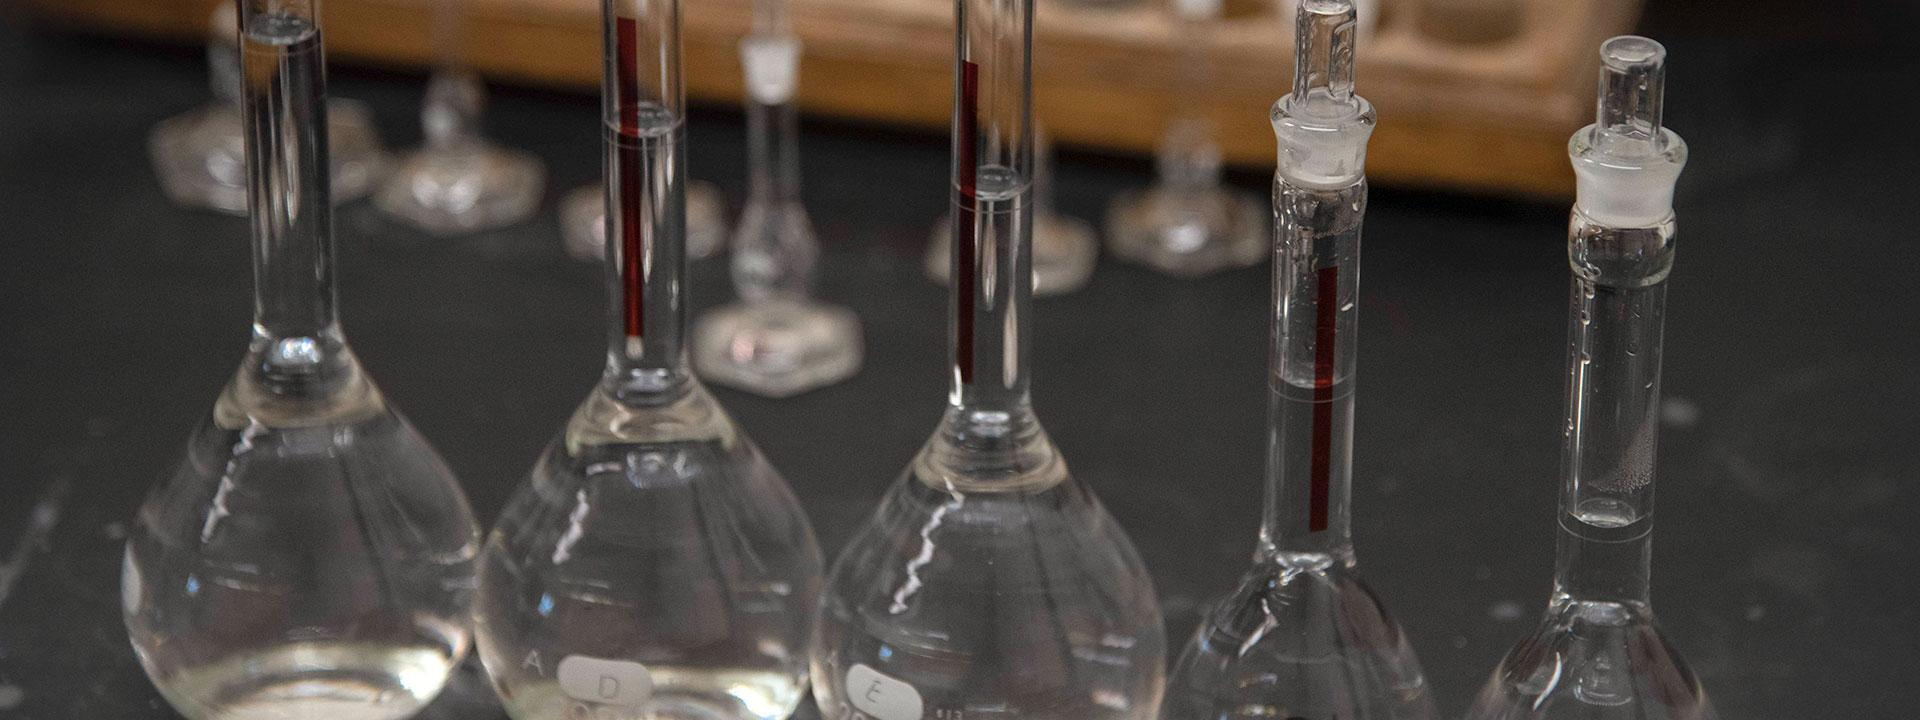 Close up of test tubes and beakers filled with a clear liquid